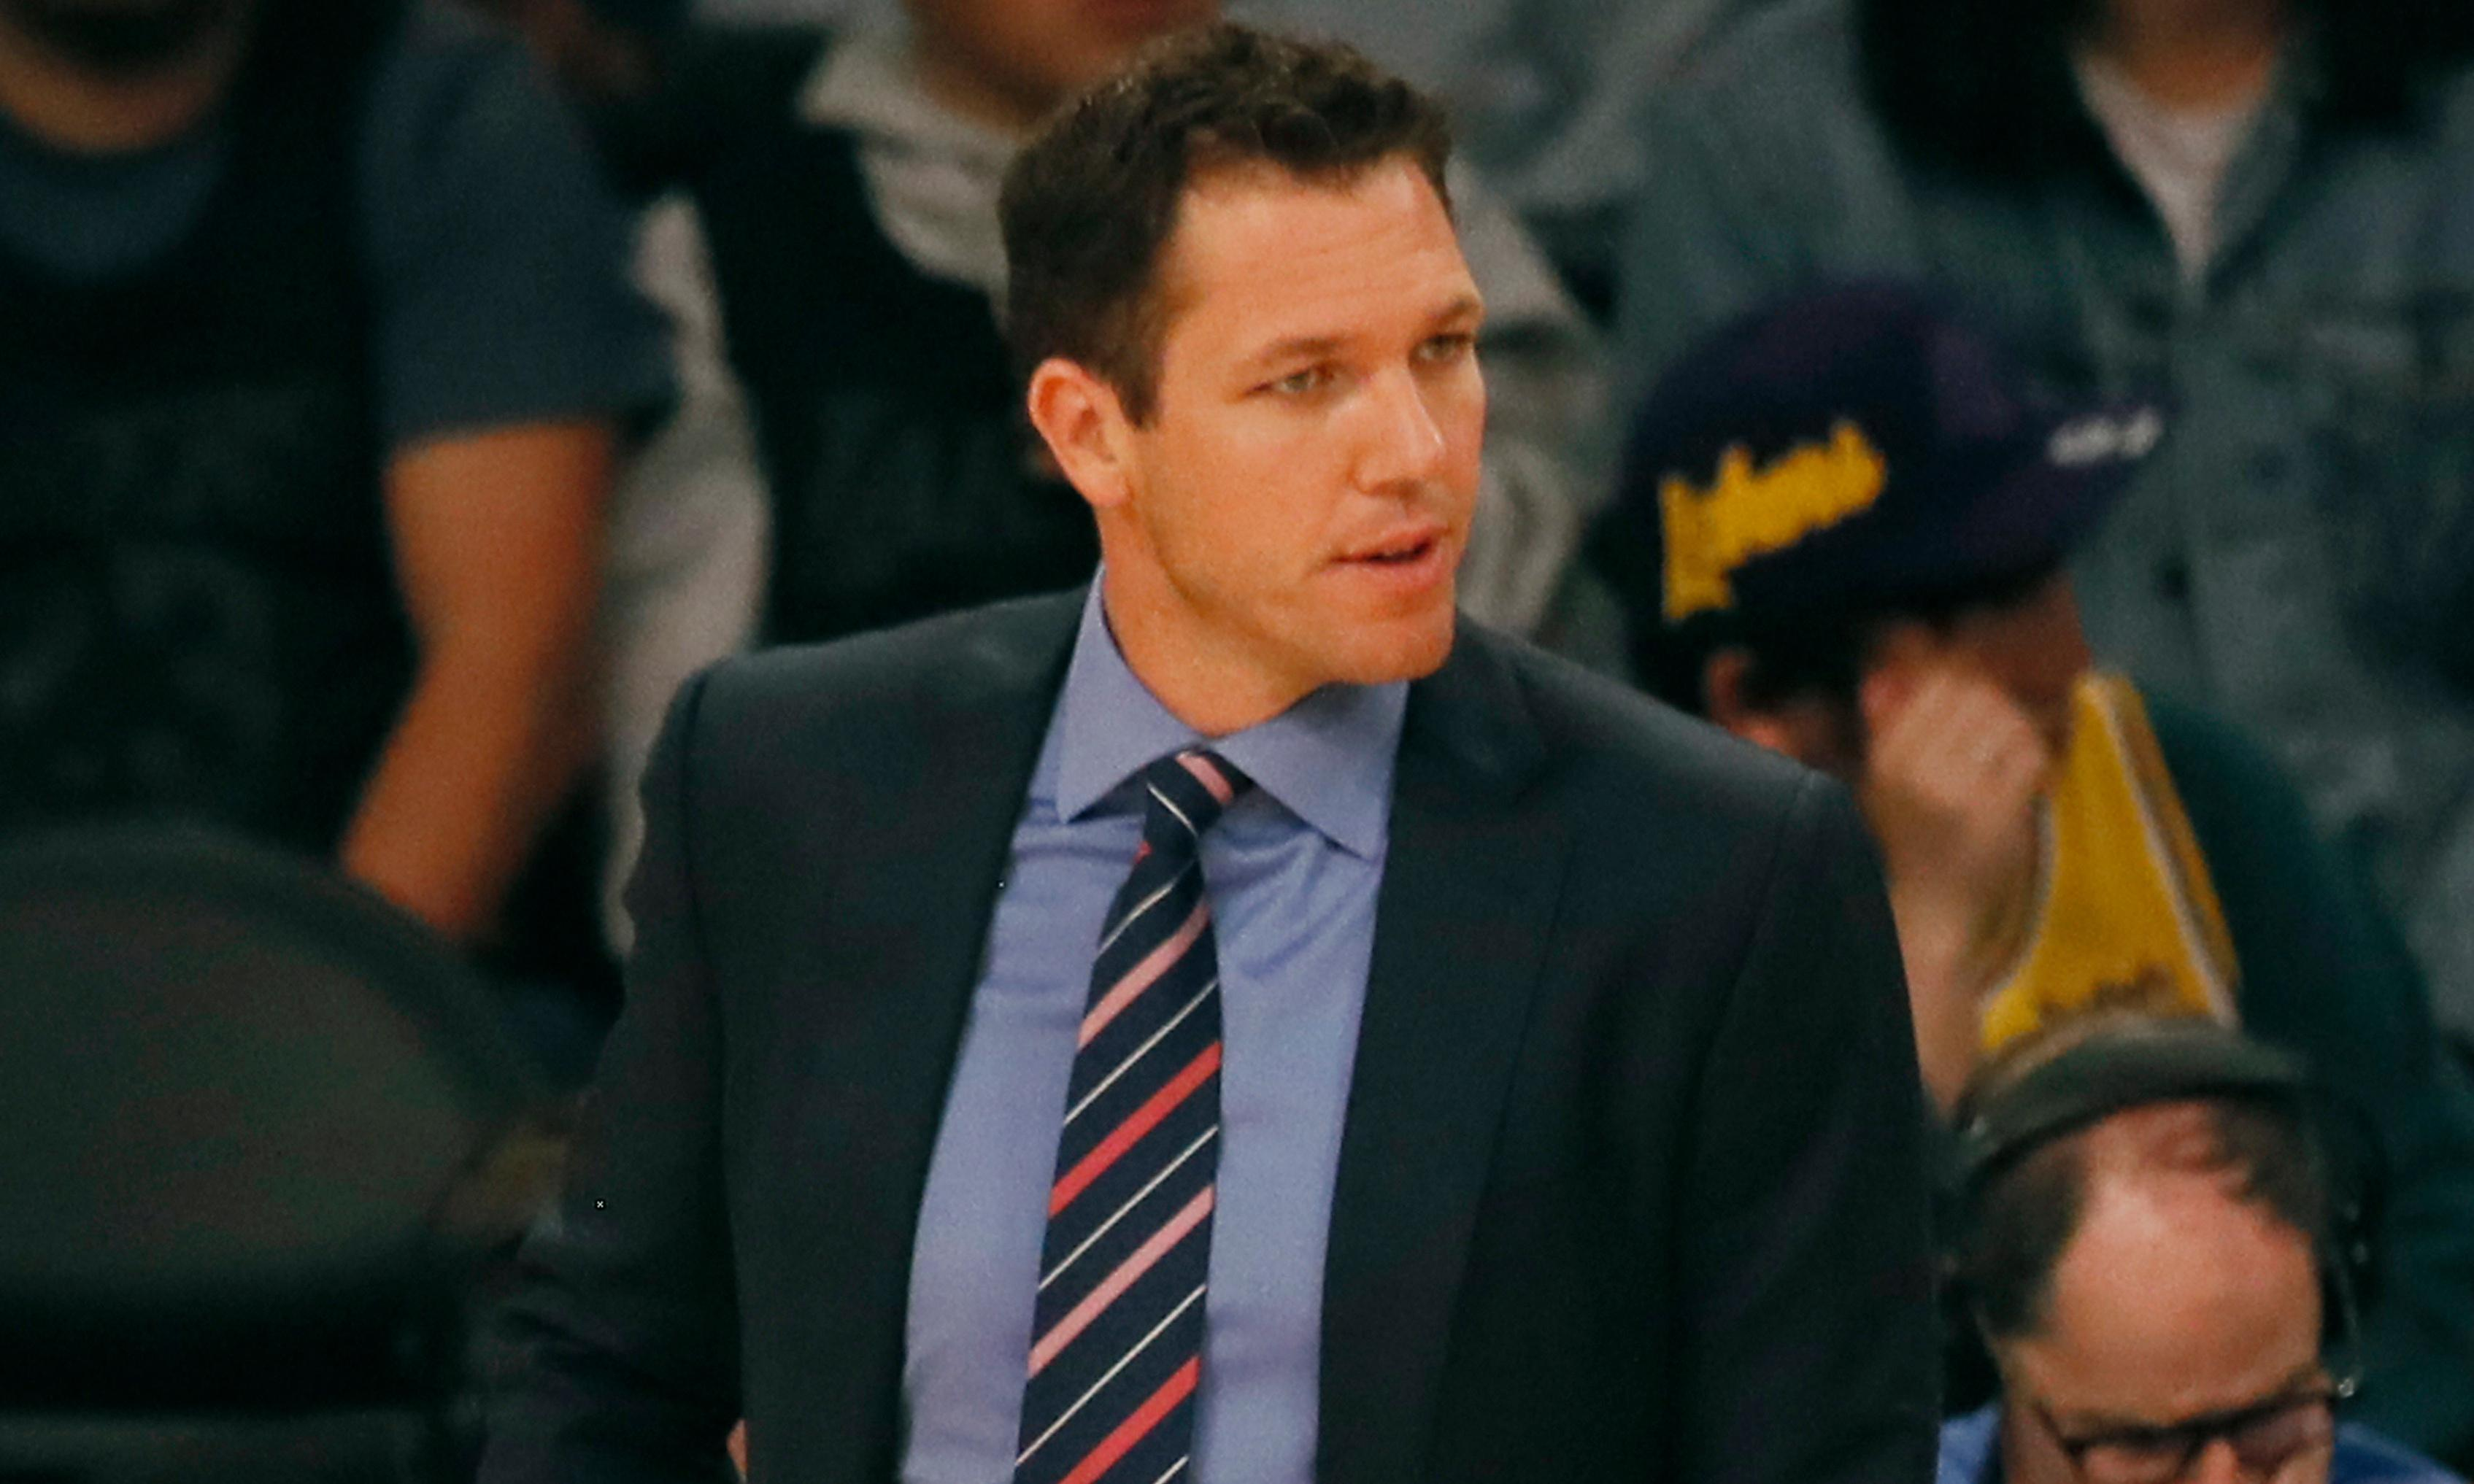 Former Lakers coach Luke Walton accused of sexual assault in lawsuit